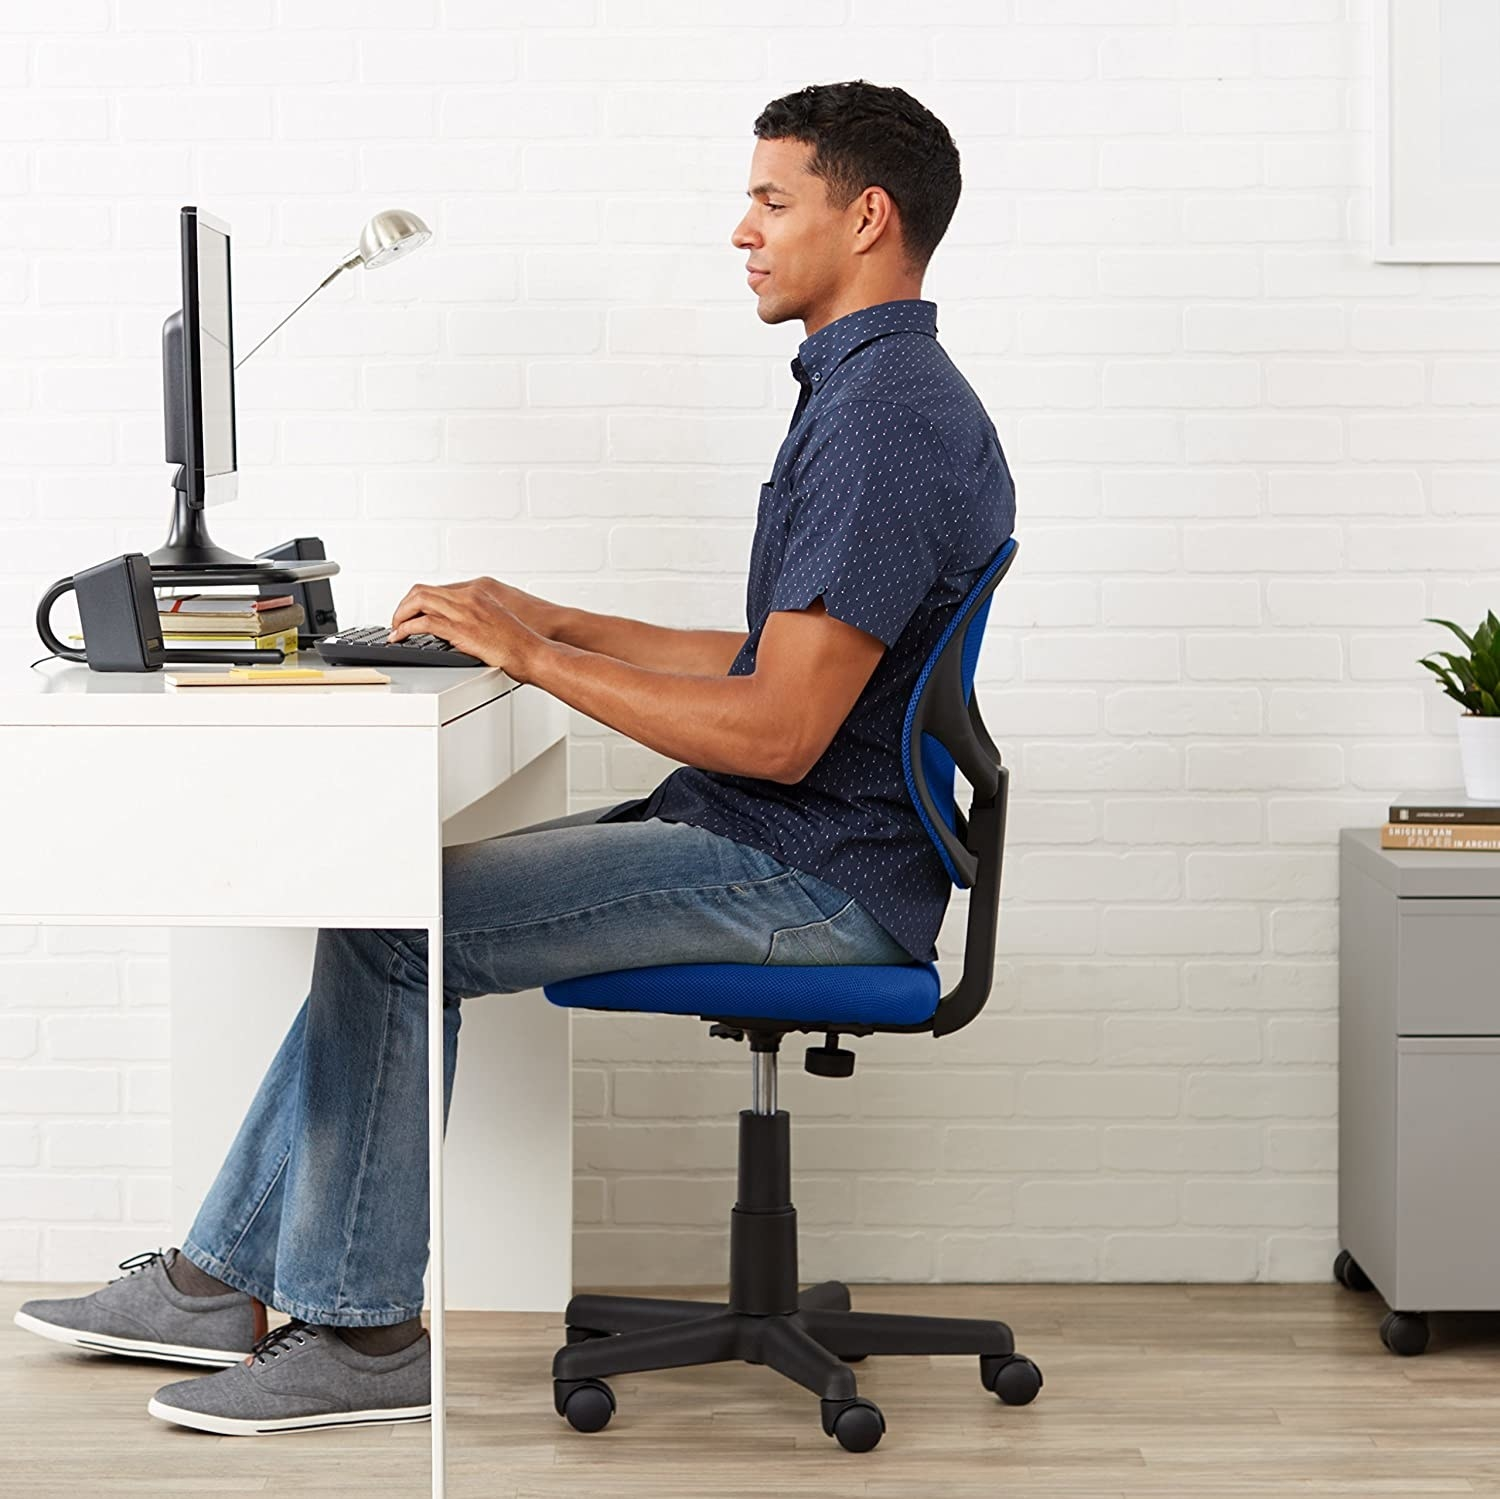 A person sitting at their desk on a chair with wheels